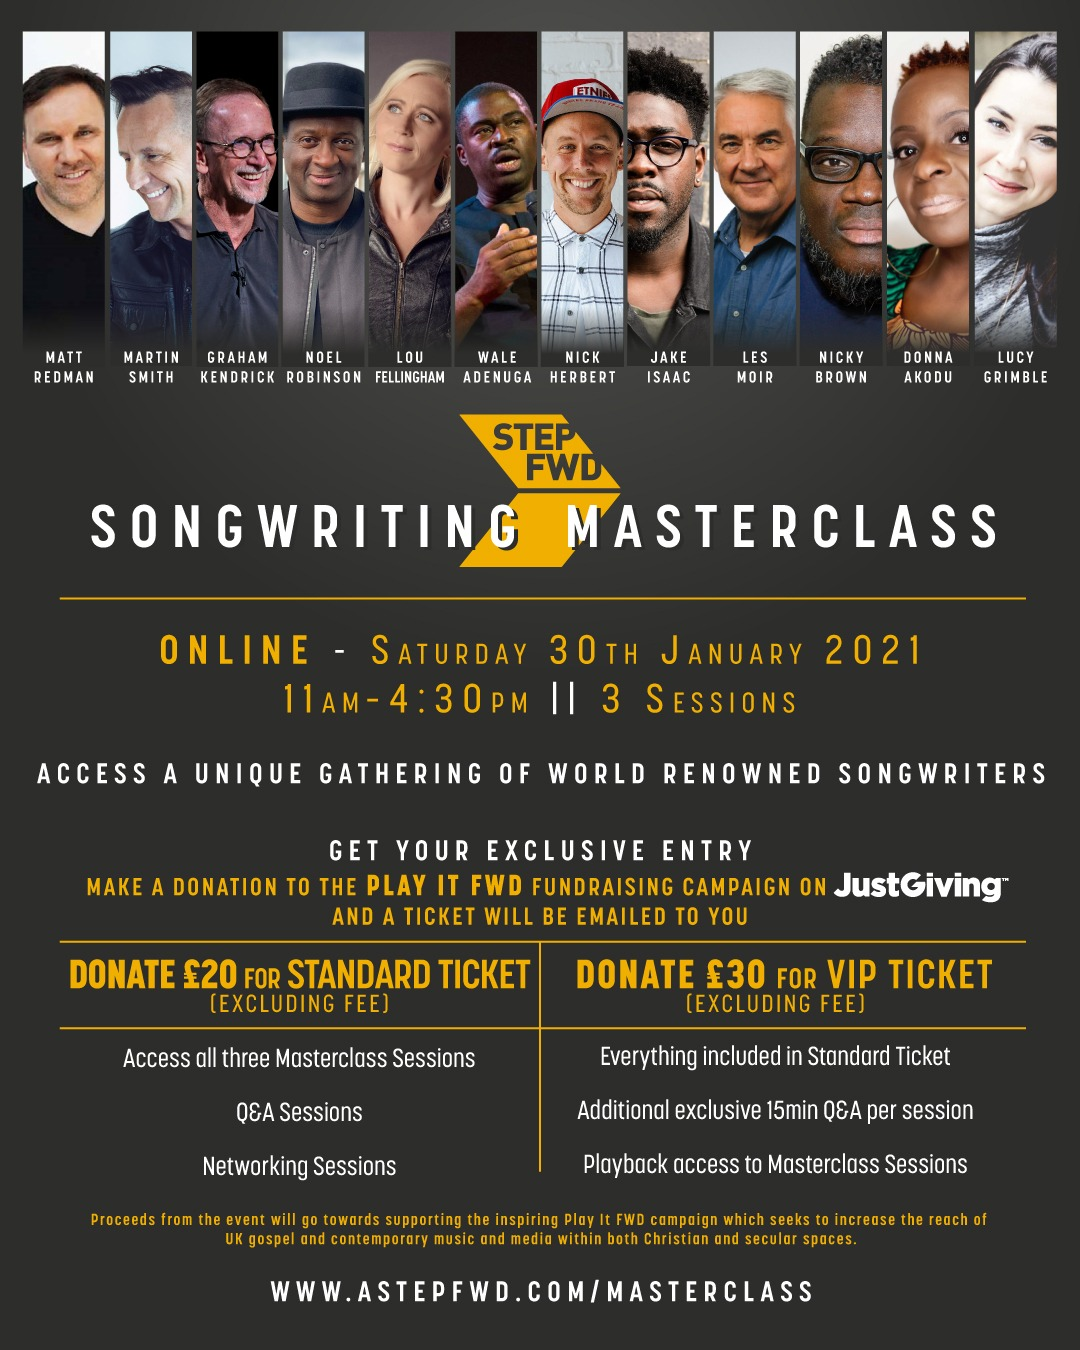 aStepFWD to host unique gathering of world-renowned creatives  at Songwriting Masterclass